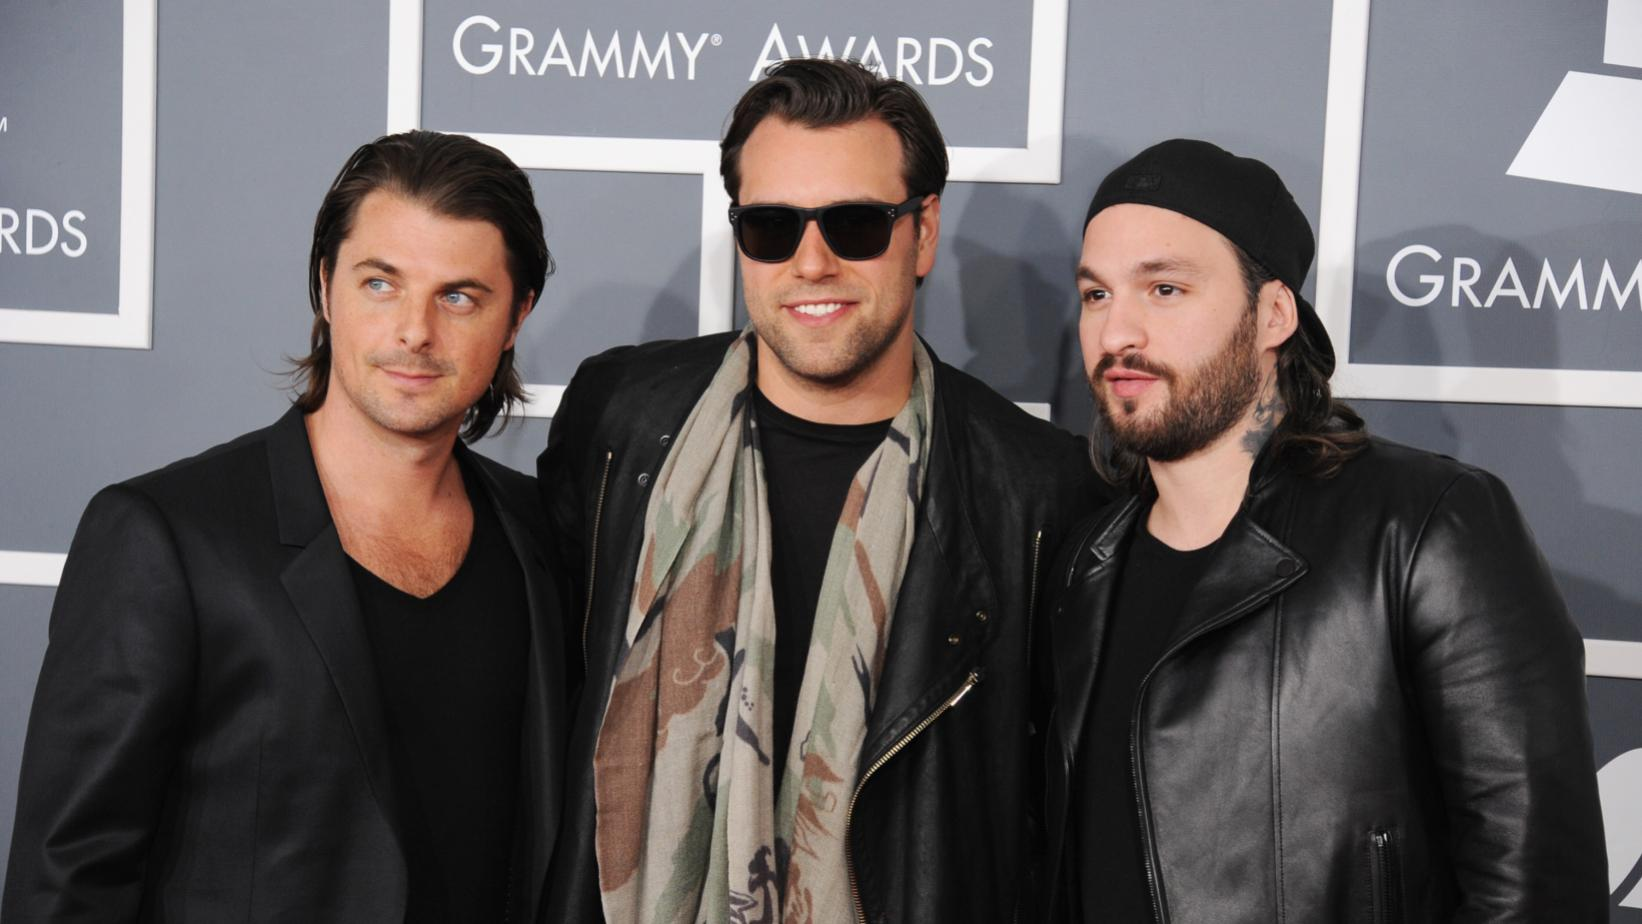 Swedish House Mafia at the GRAMMY Awards, 2013